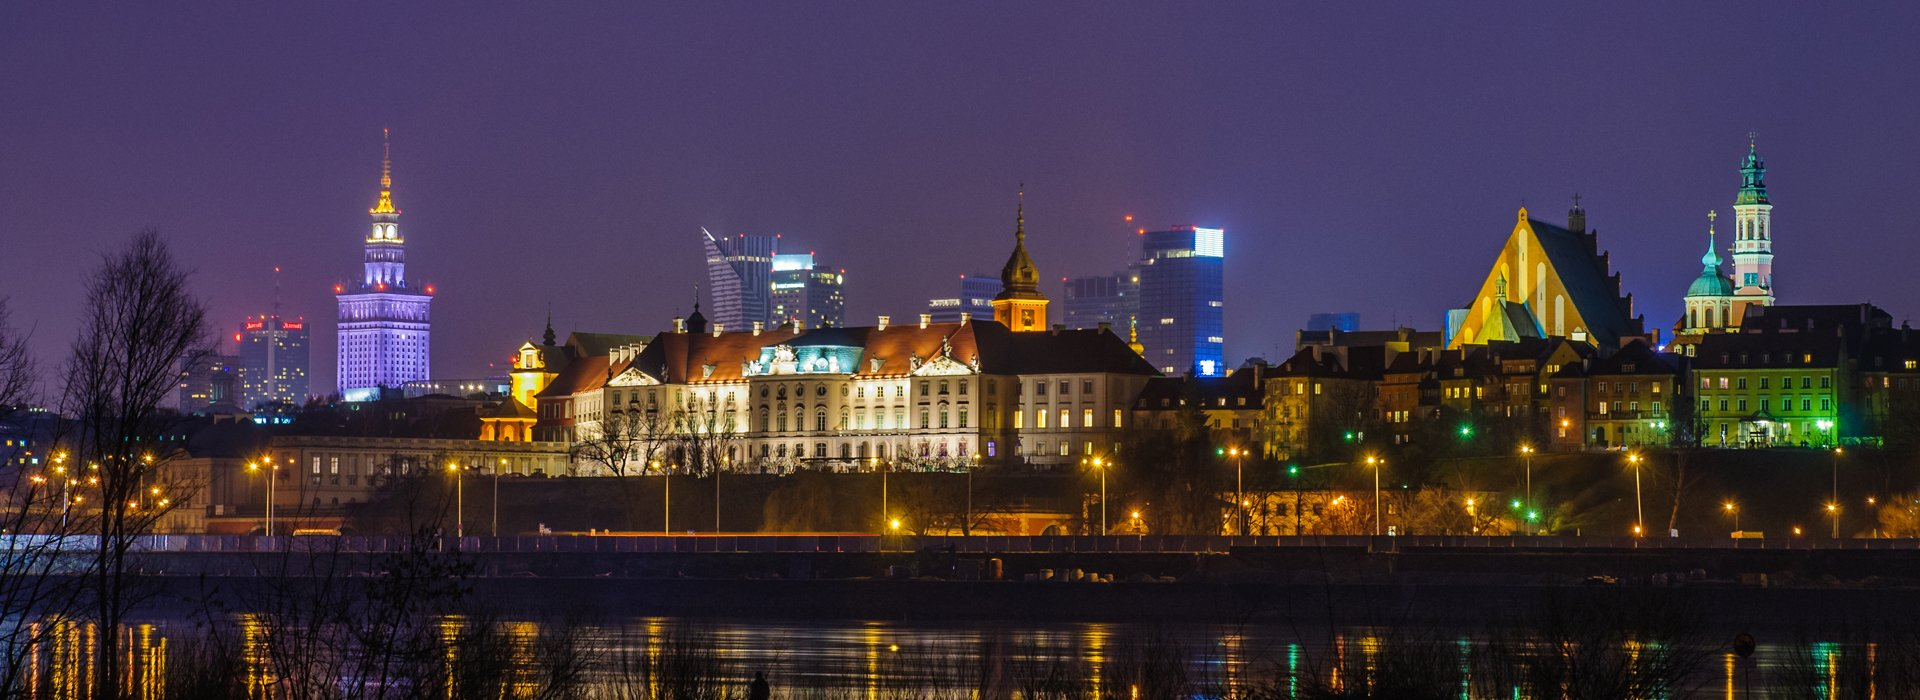 It is worth to take a walk and admire the old city at night